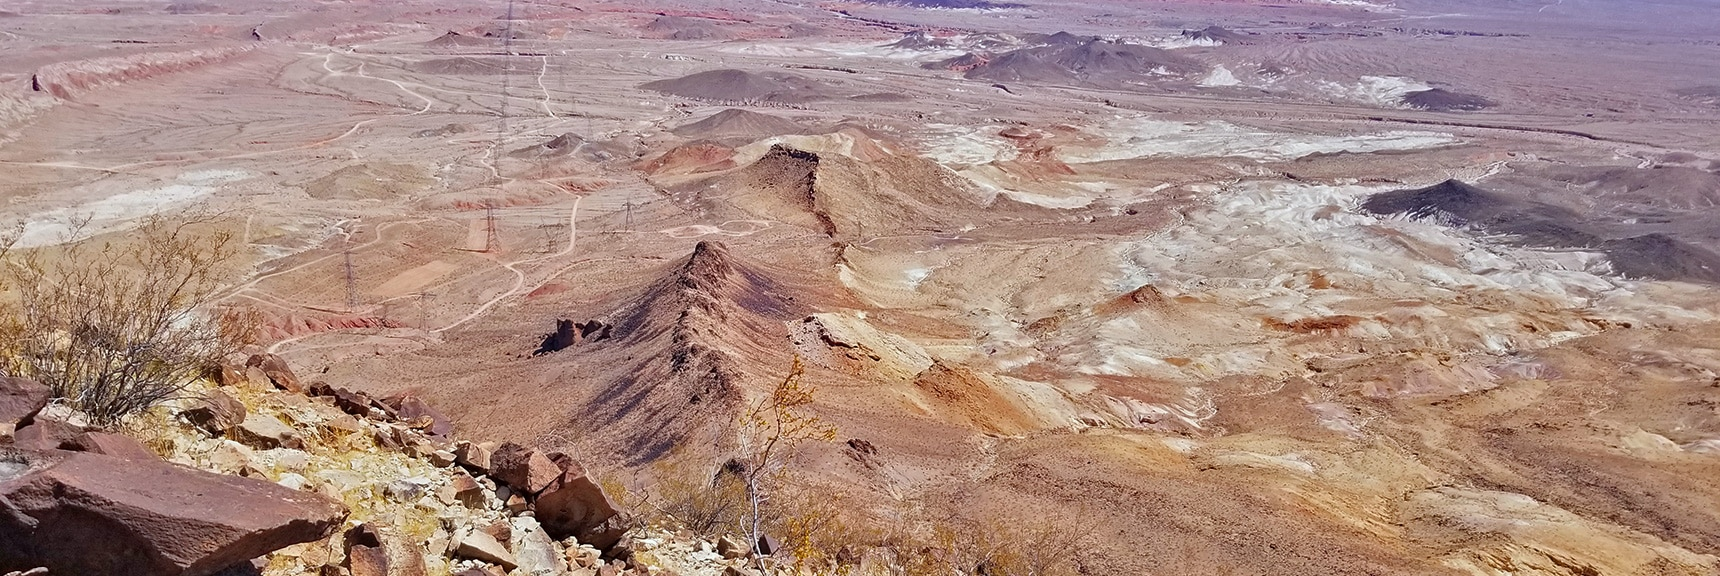 View Back Down the North Ridge of Lava Butte from the Summit | Lava Butte | Lake Mead National Recreation Area, Nevada